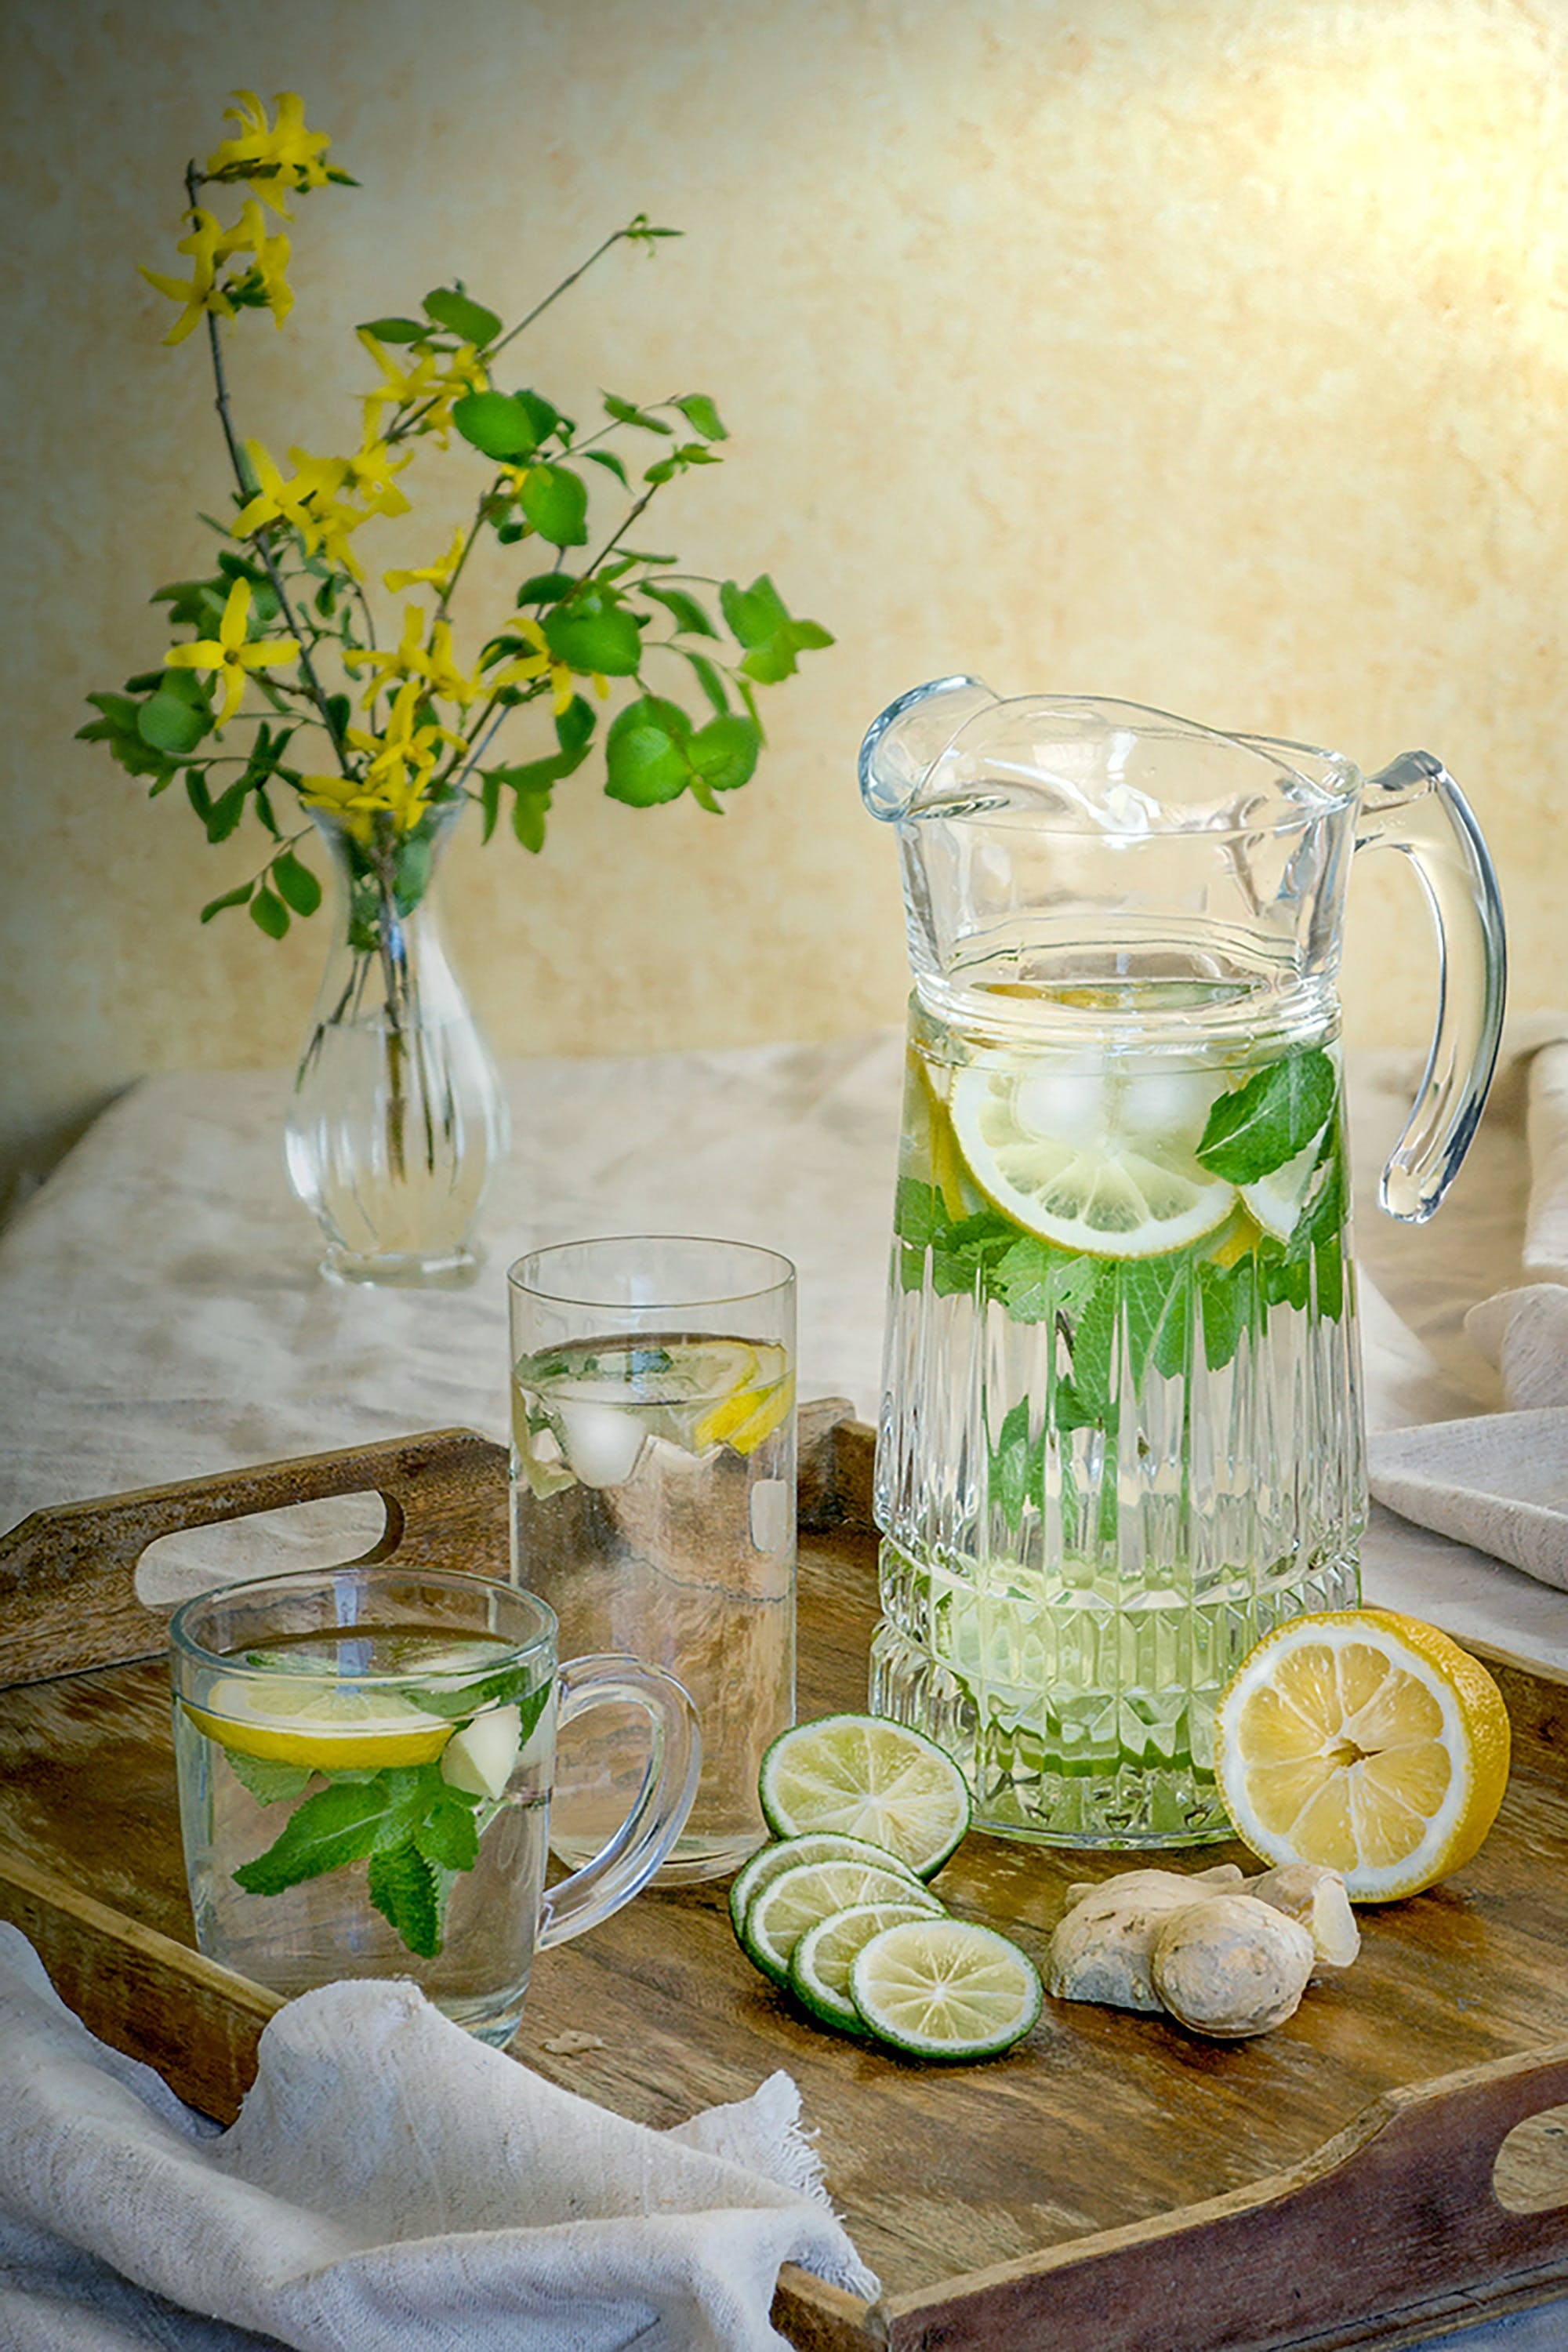 Lemon Juice in Pitcher Beside Glass Up and Sliced Lemons on Serving Tray